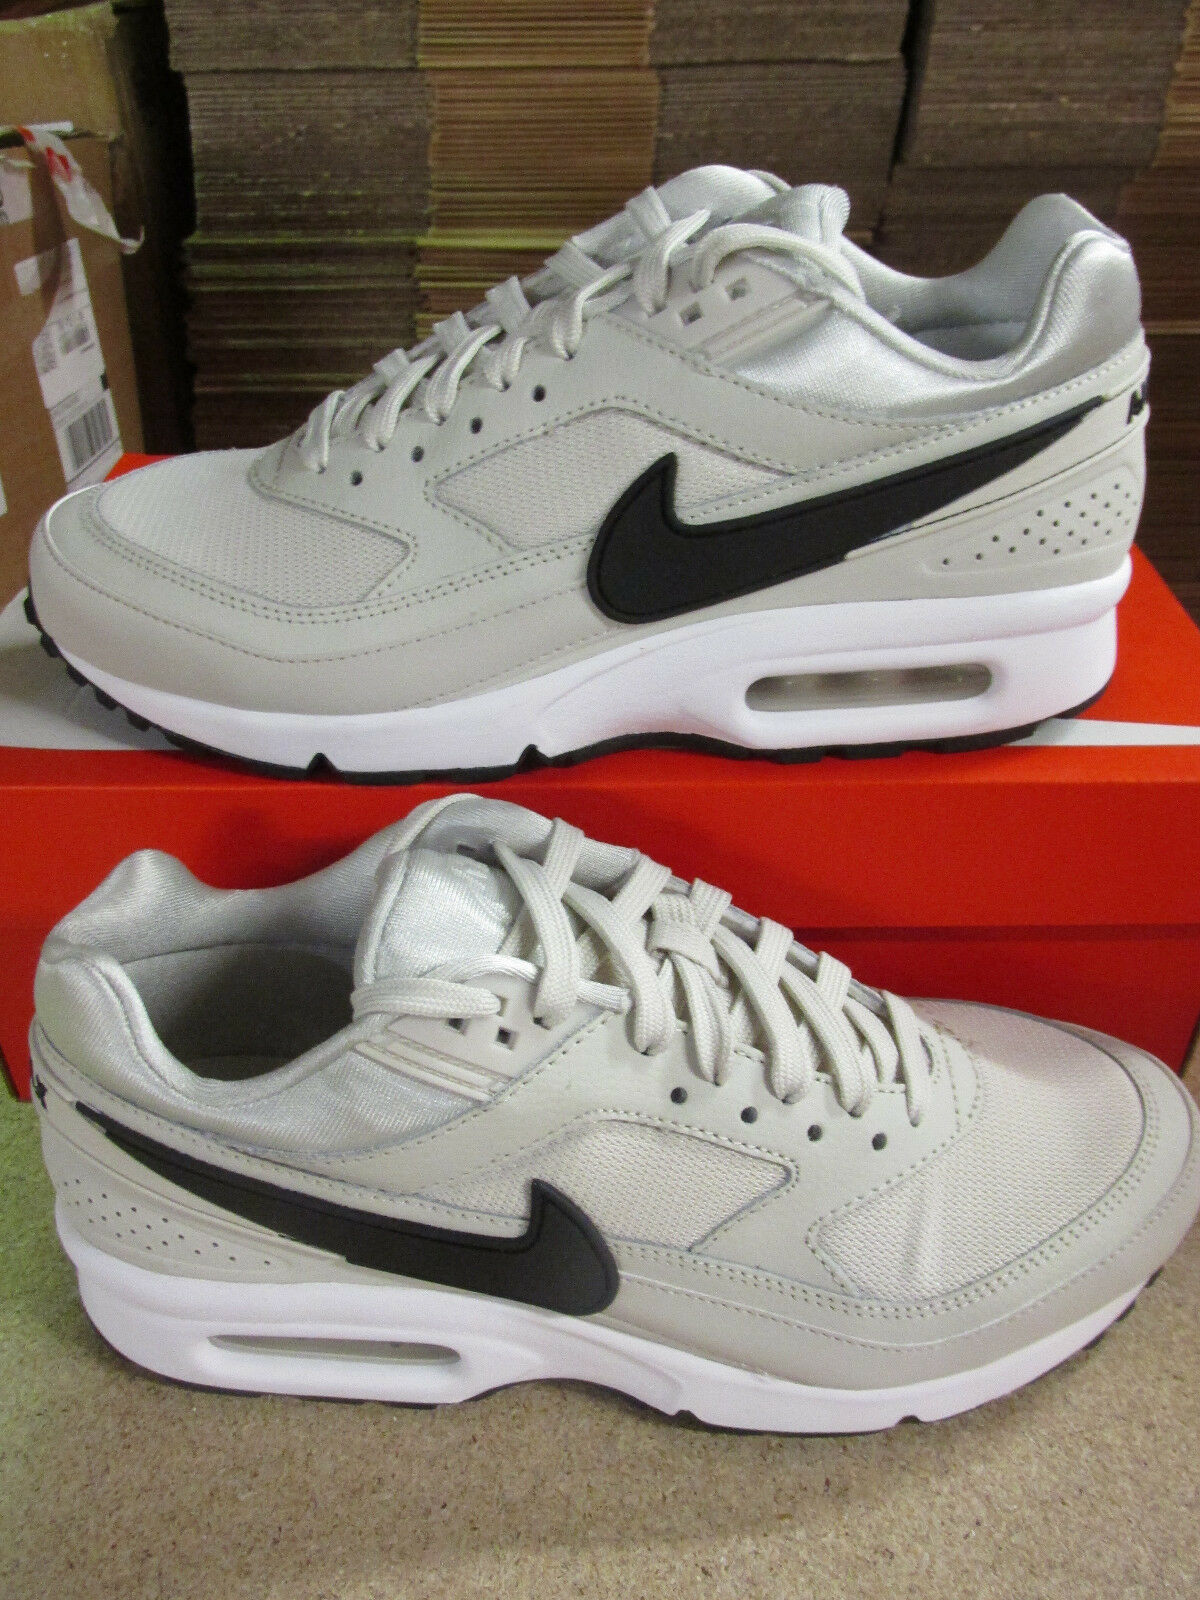 Nike Bir Max BW SE Womens Running Trainers 883819 001 Sneakers Shoes